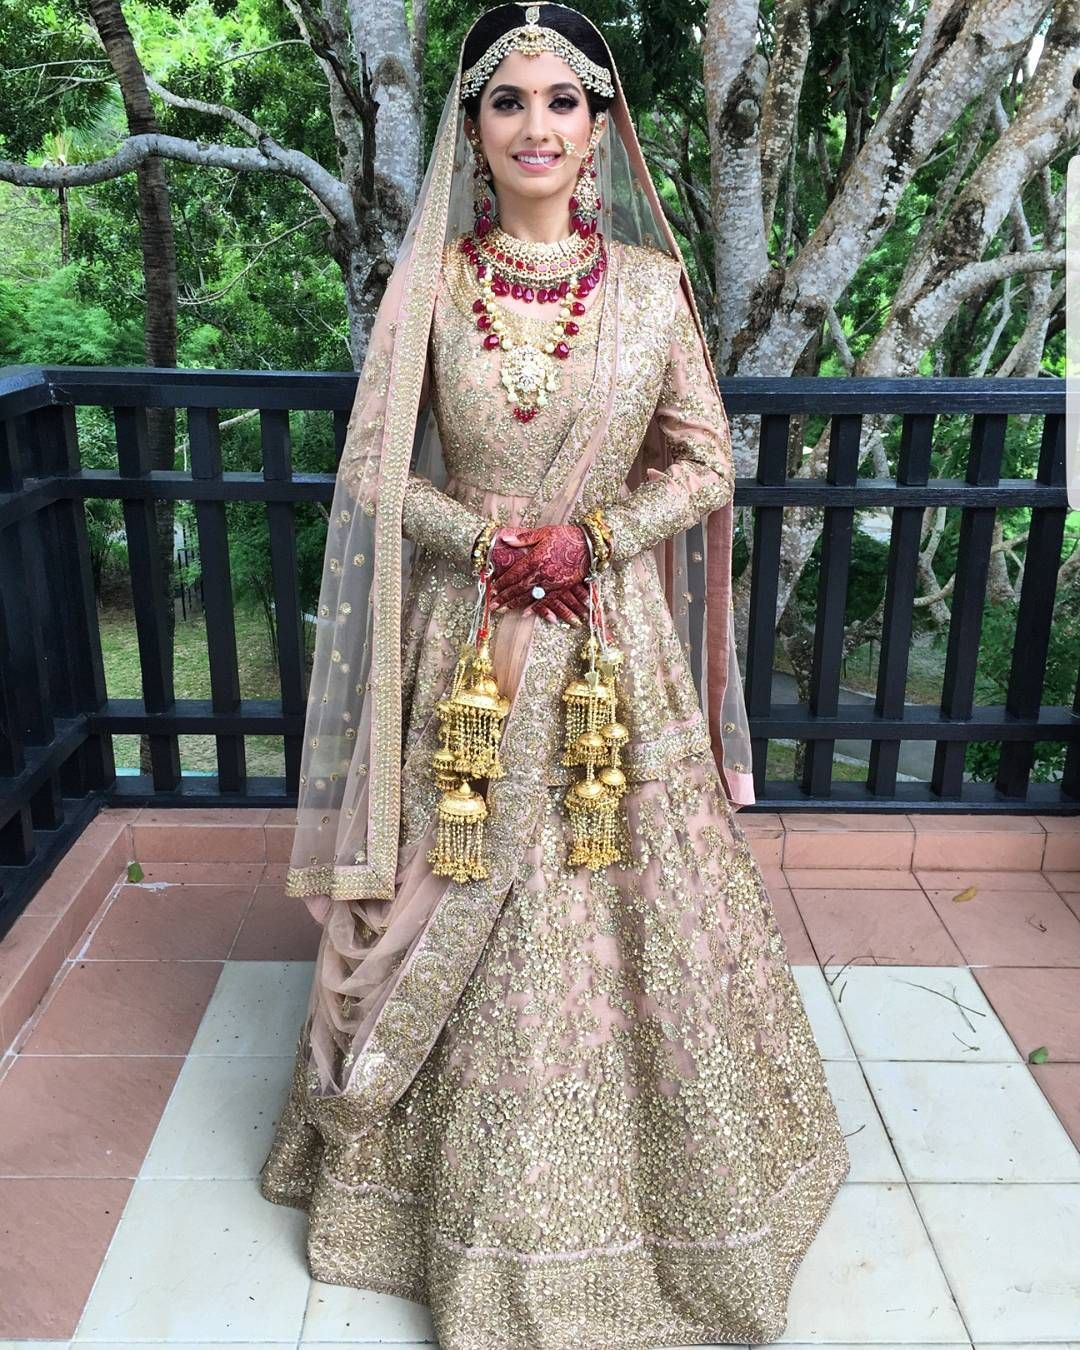 Real Indian Brides Who Wore An All,Gold Outfit On Their